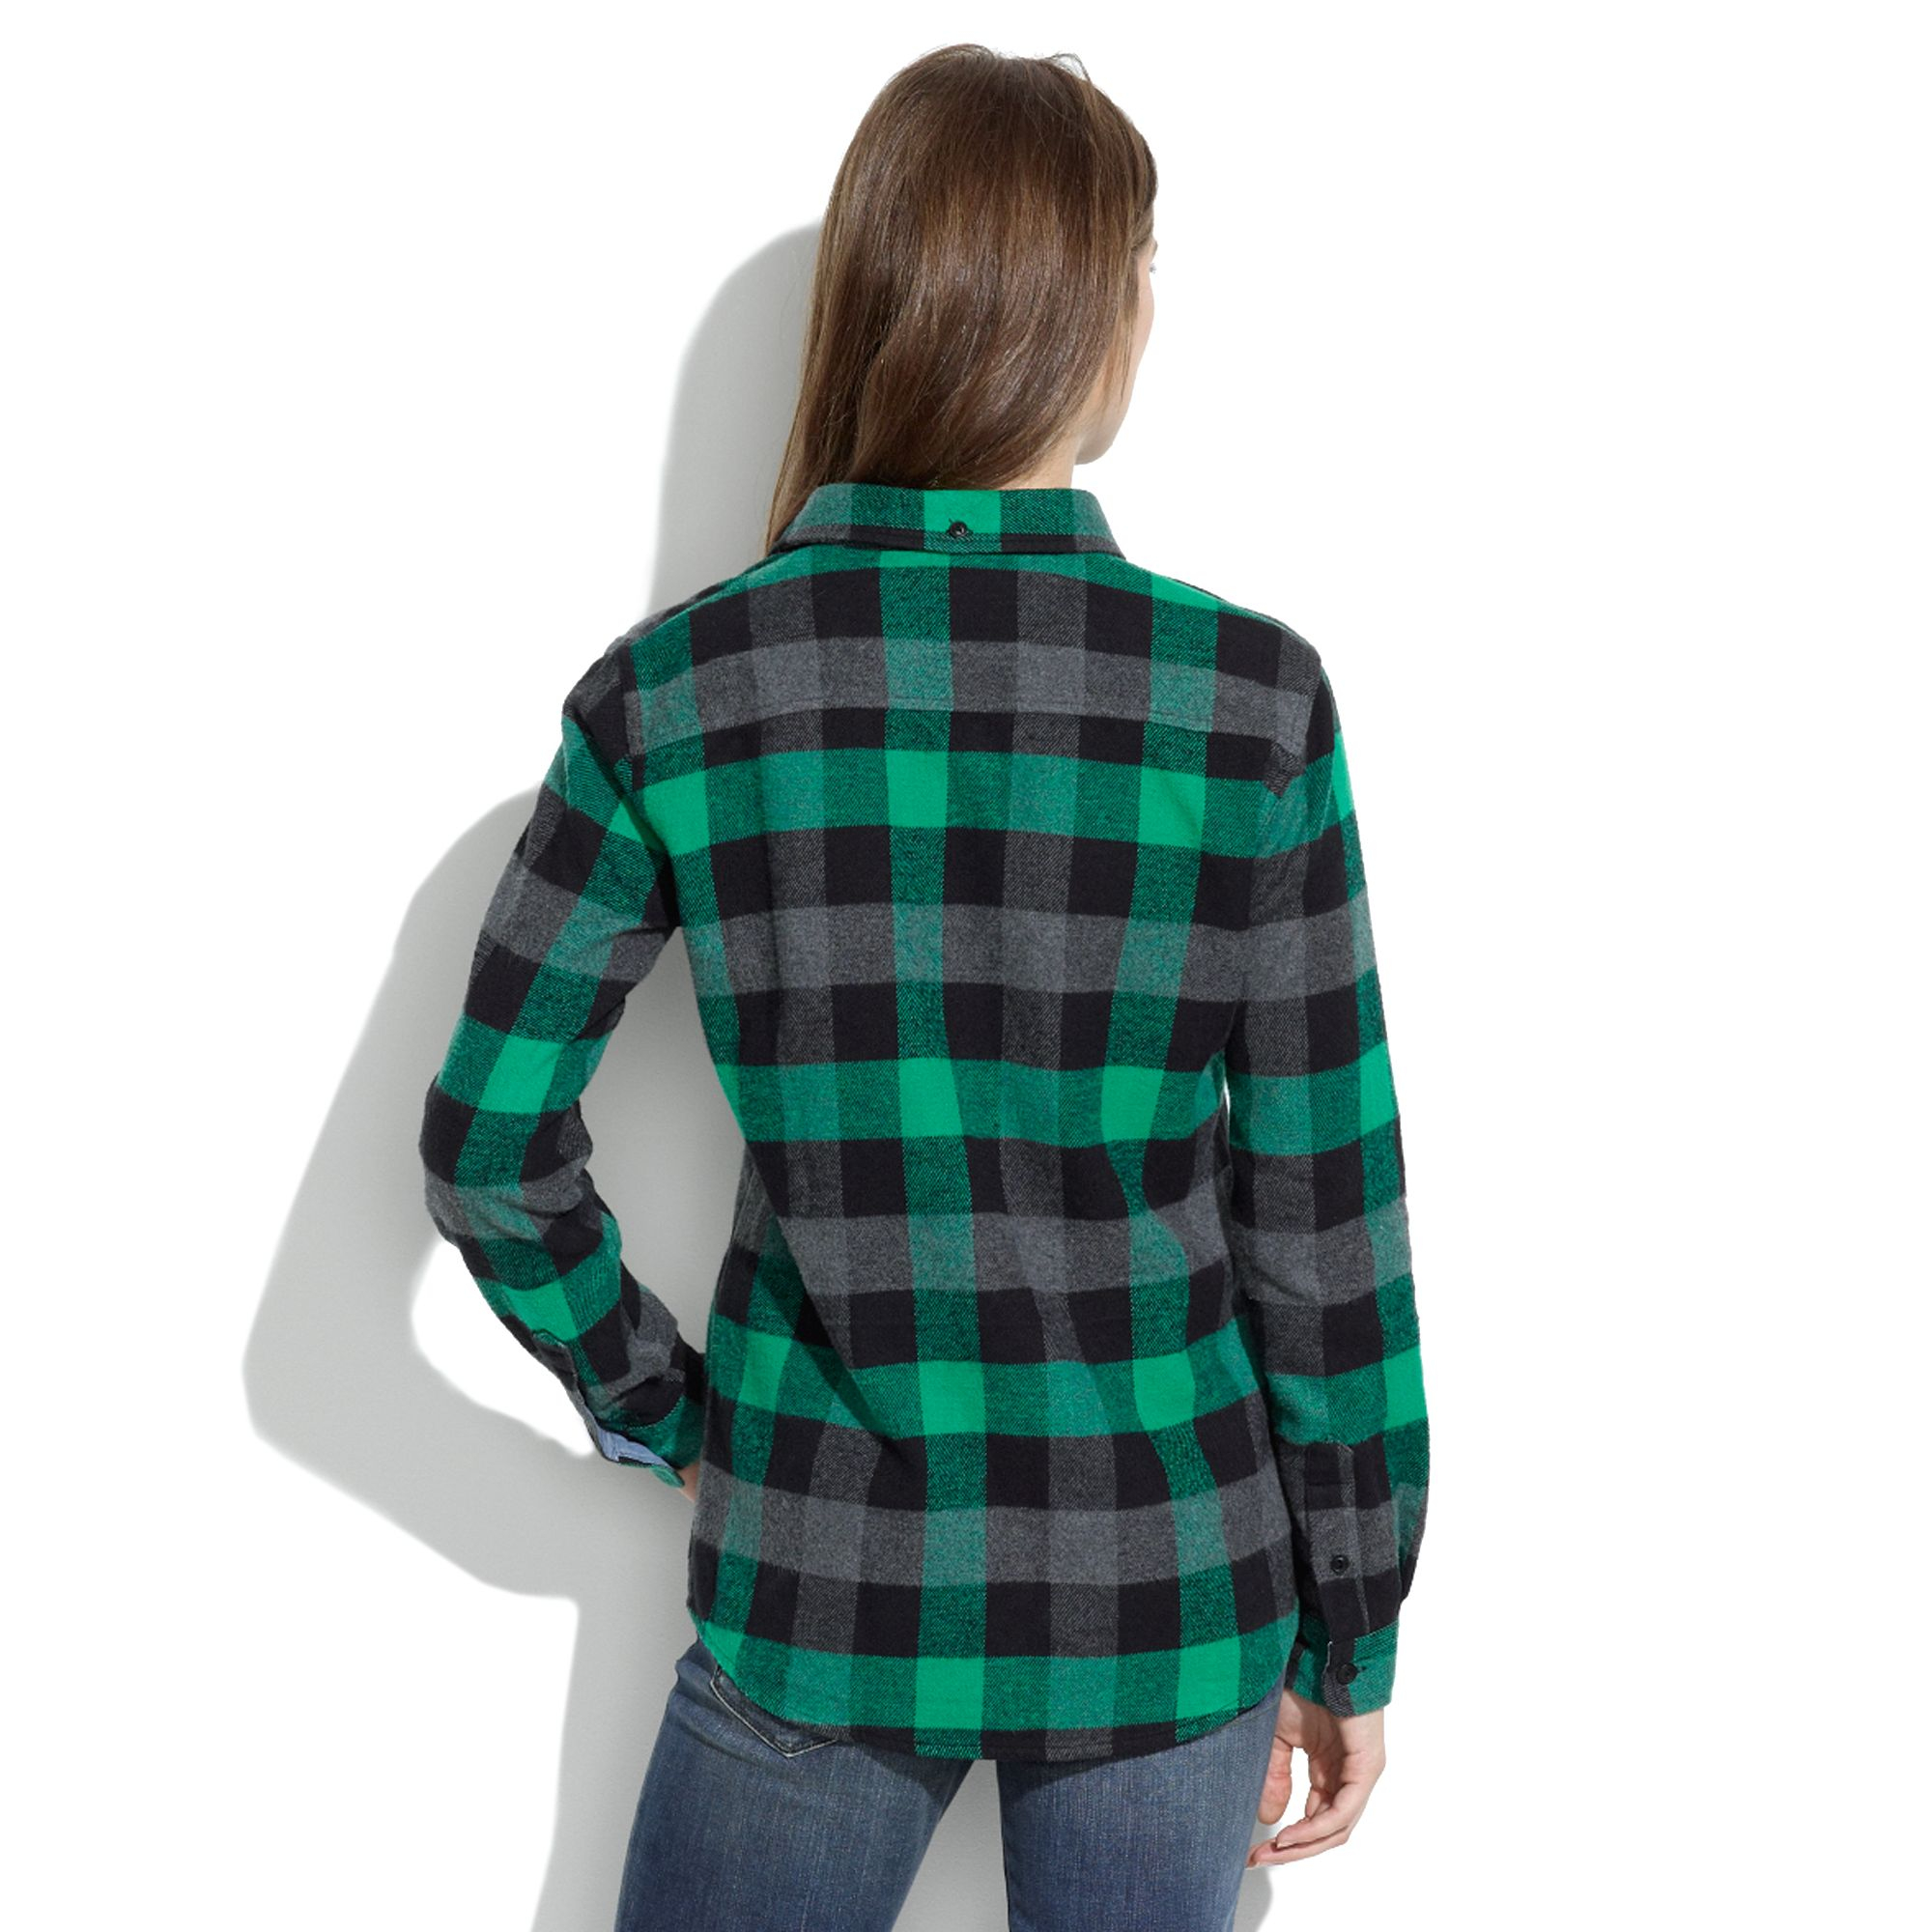 Lyst - Madewell Penfield Reg  Chatham Buffalo Plaid Flannel Shirt in ... d26070f6ecb